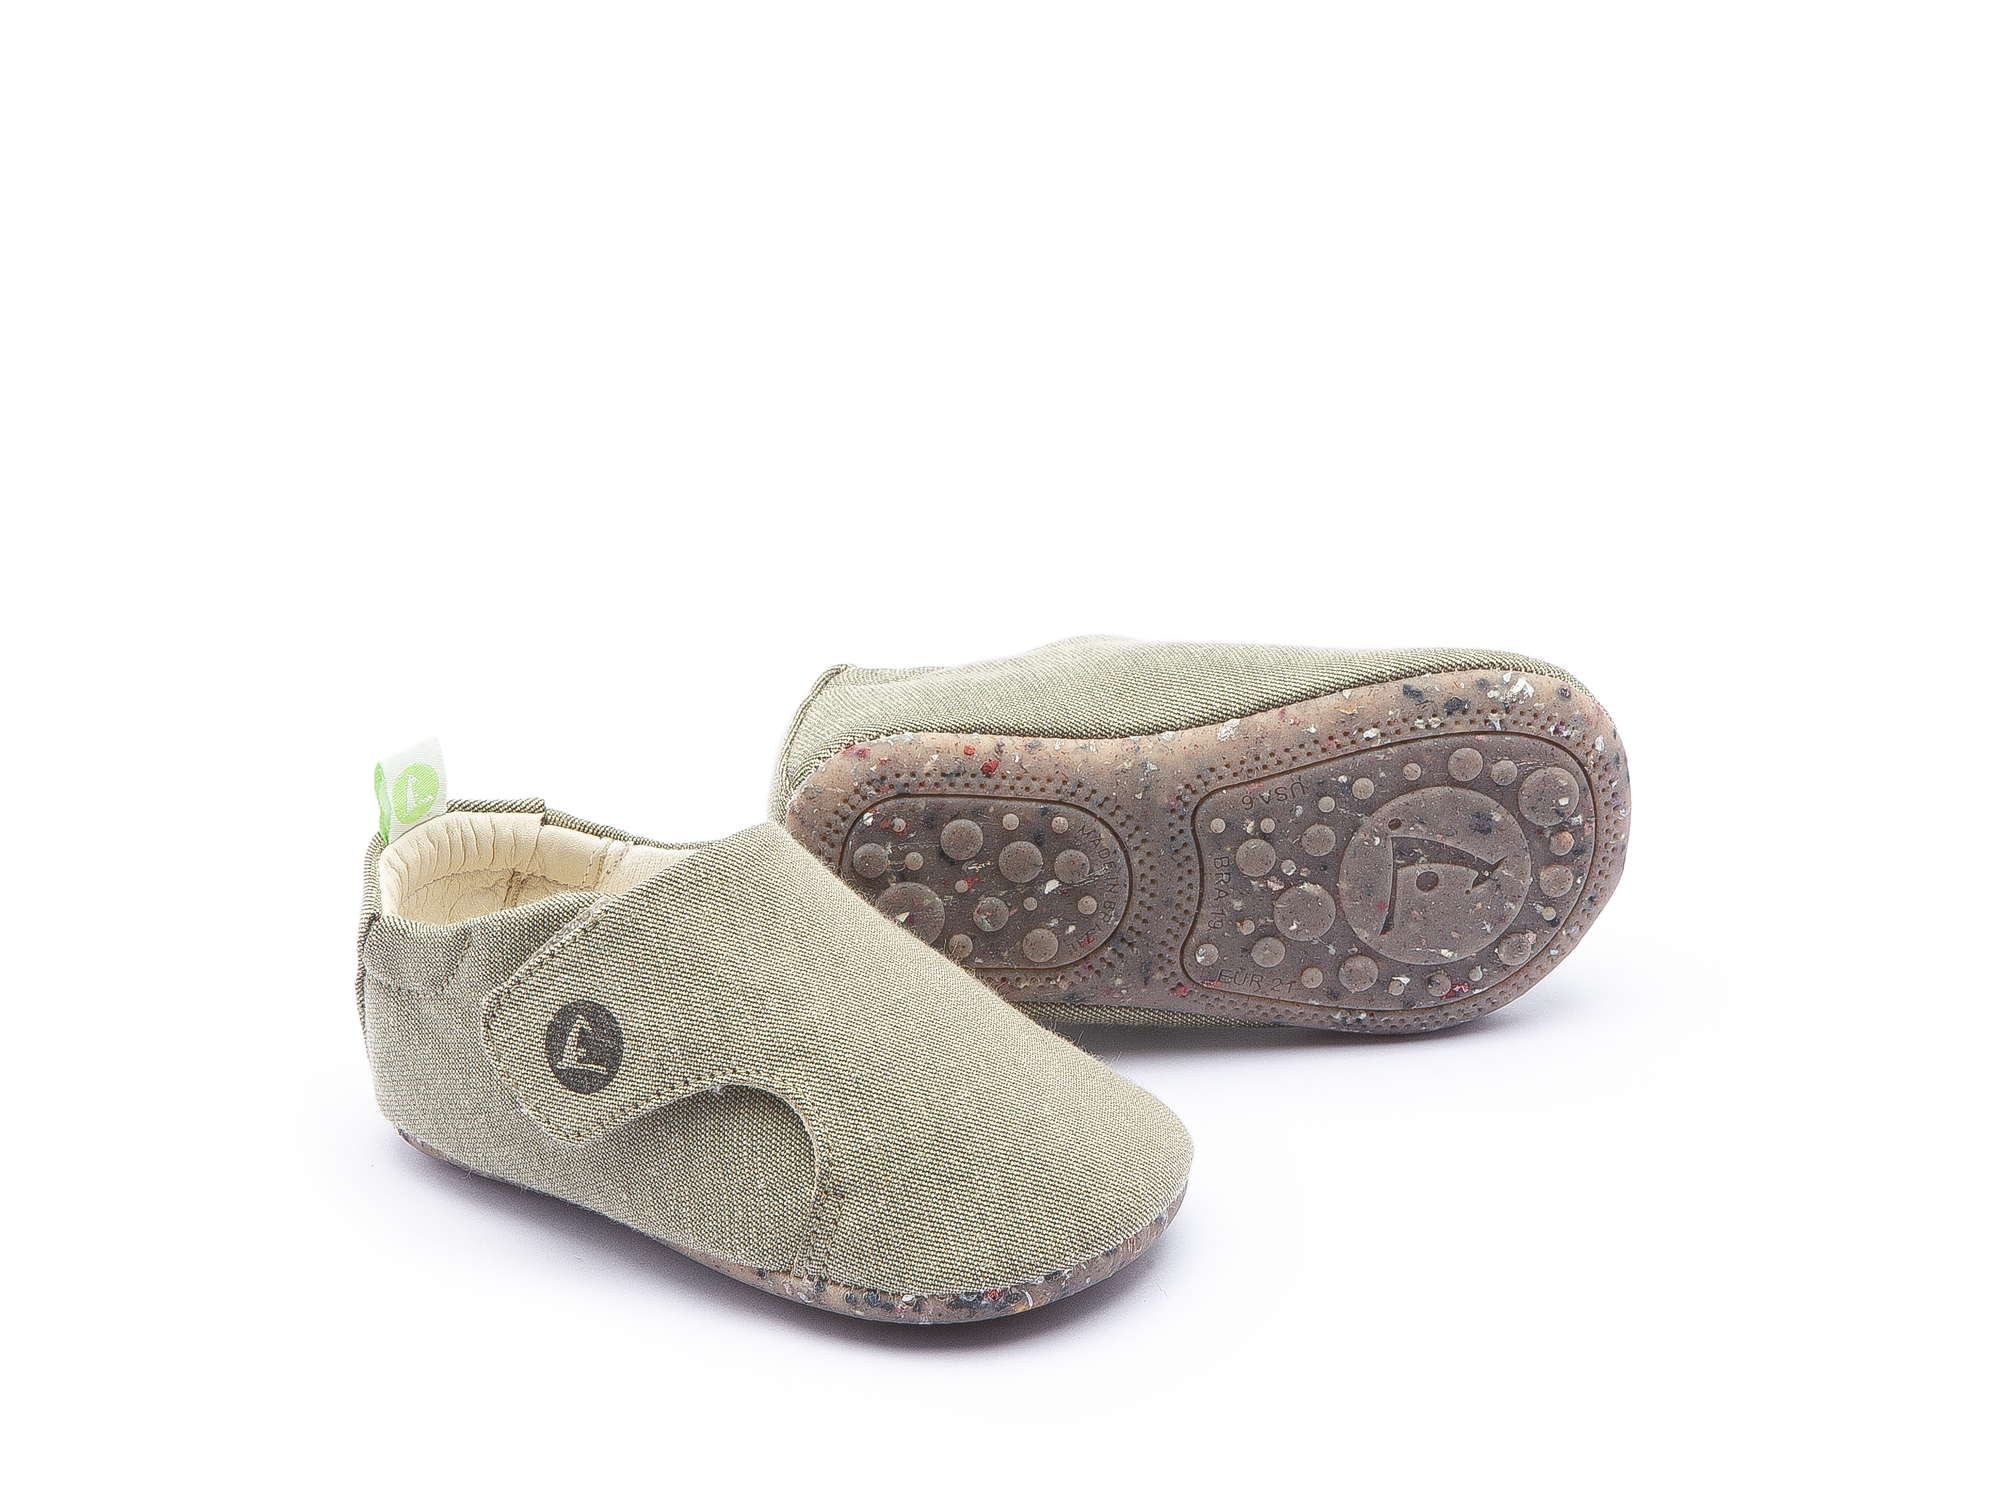 Sneaker Casual Greeny Light Olive Canvas Baby 0 à 2 anos - 0